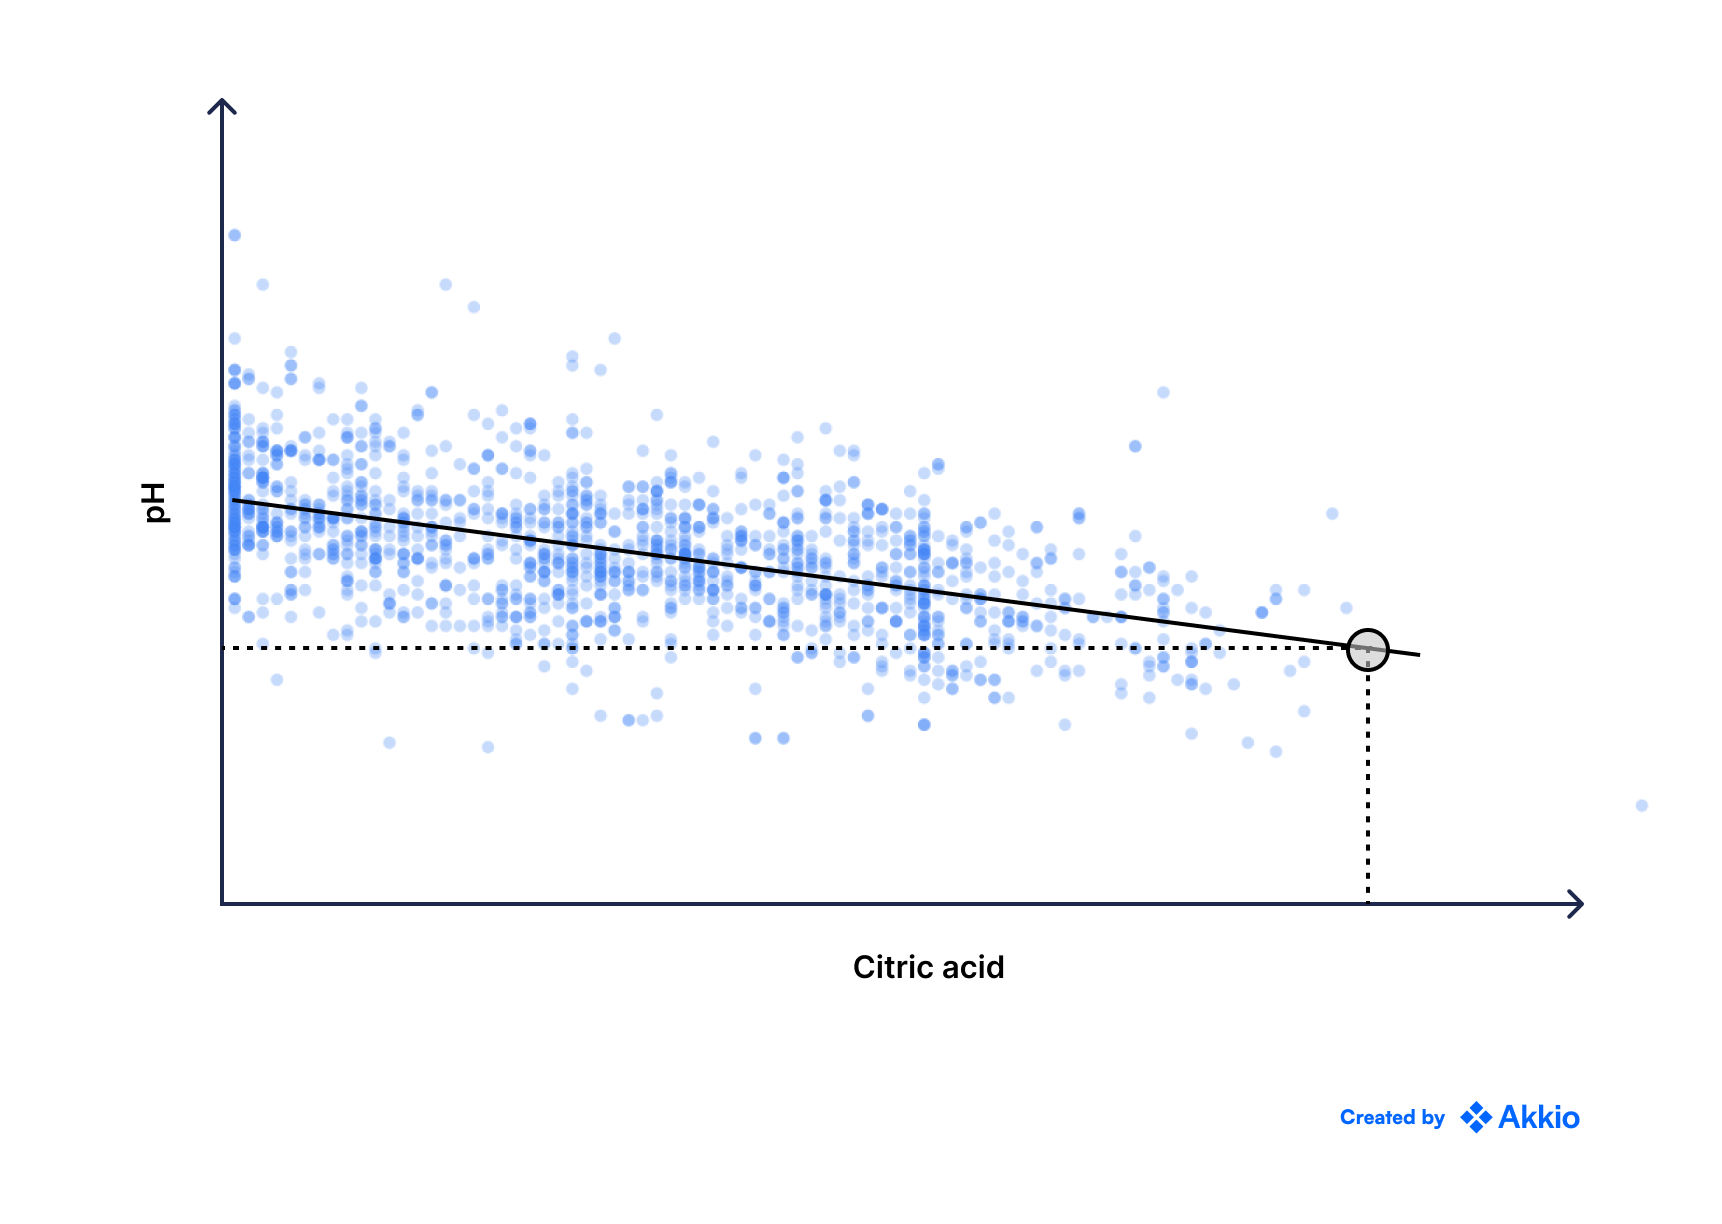 A scatter plot with data points organized in a linear way, declining along the x-axis. The y-axis represents pH values and the x-axis represents citric acid values. There is a fitted line showing the linear trend. There is a point marked at the end of the line